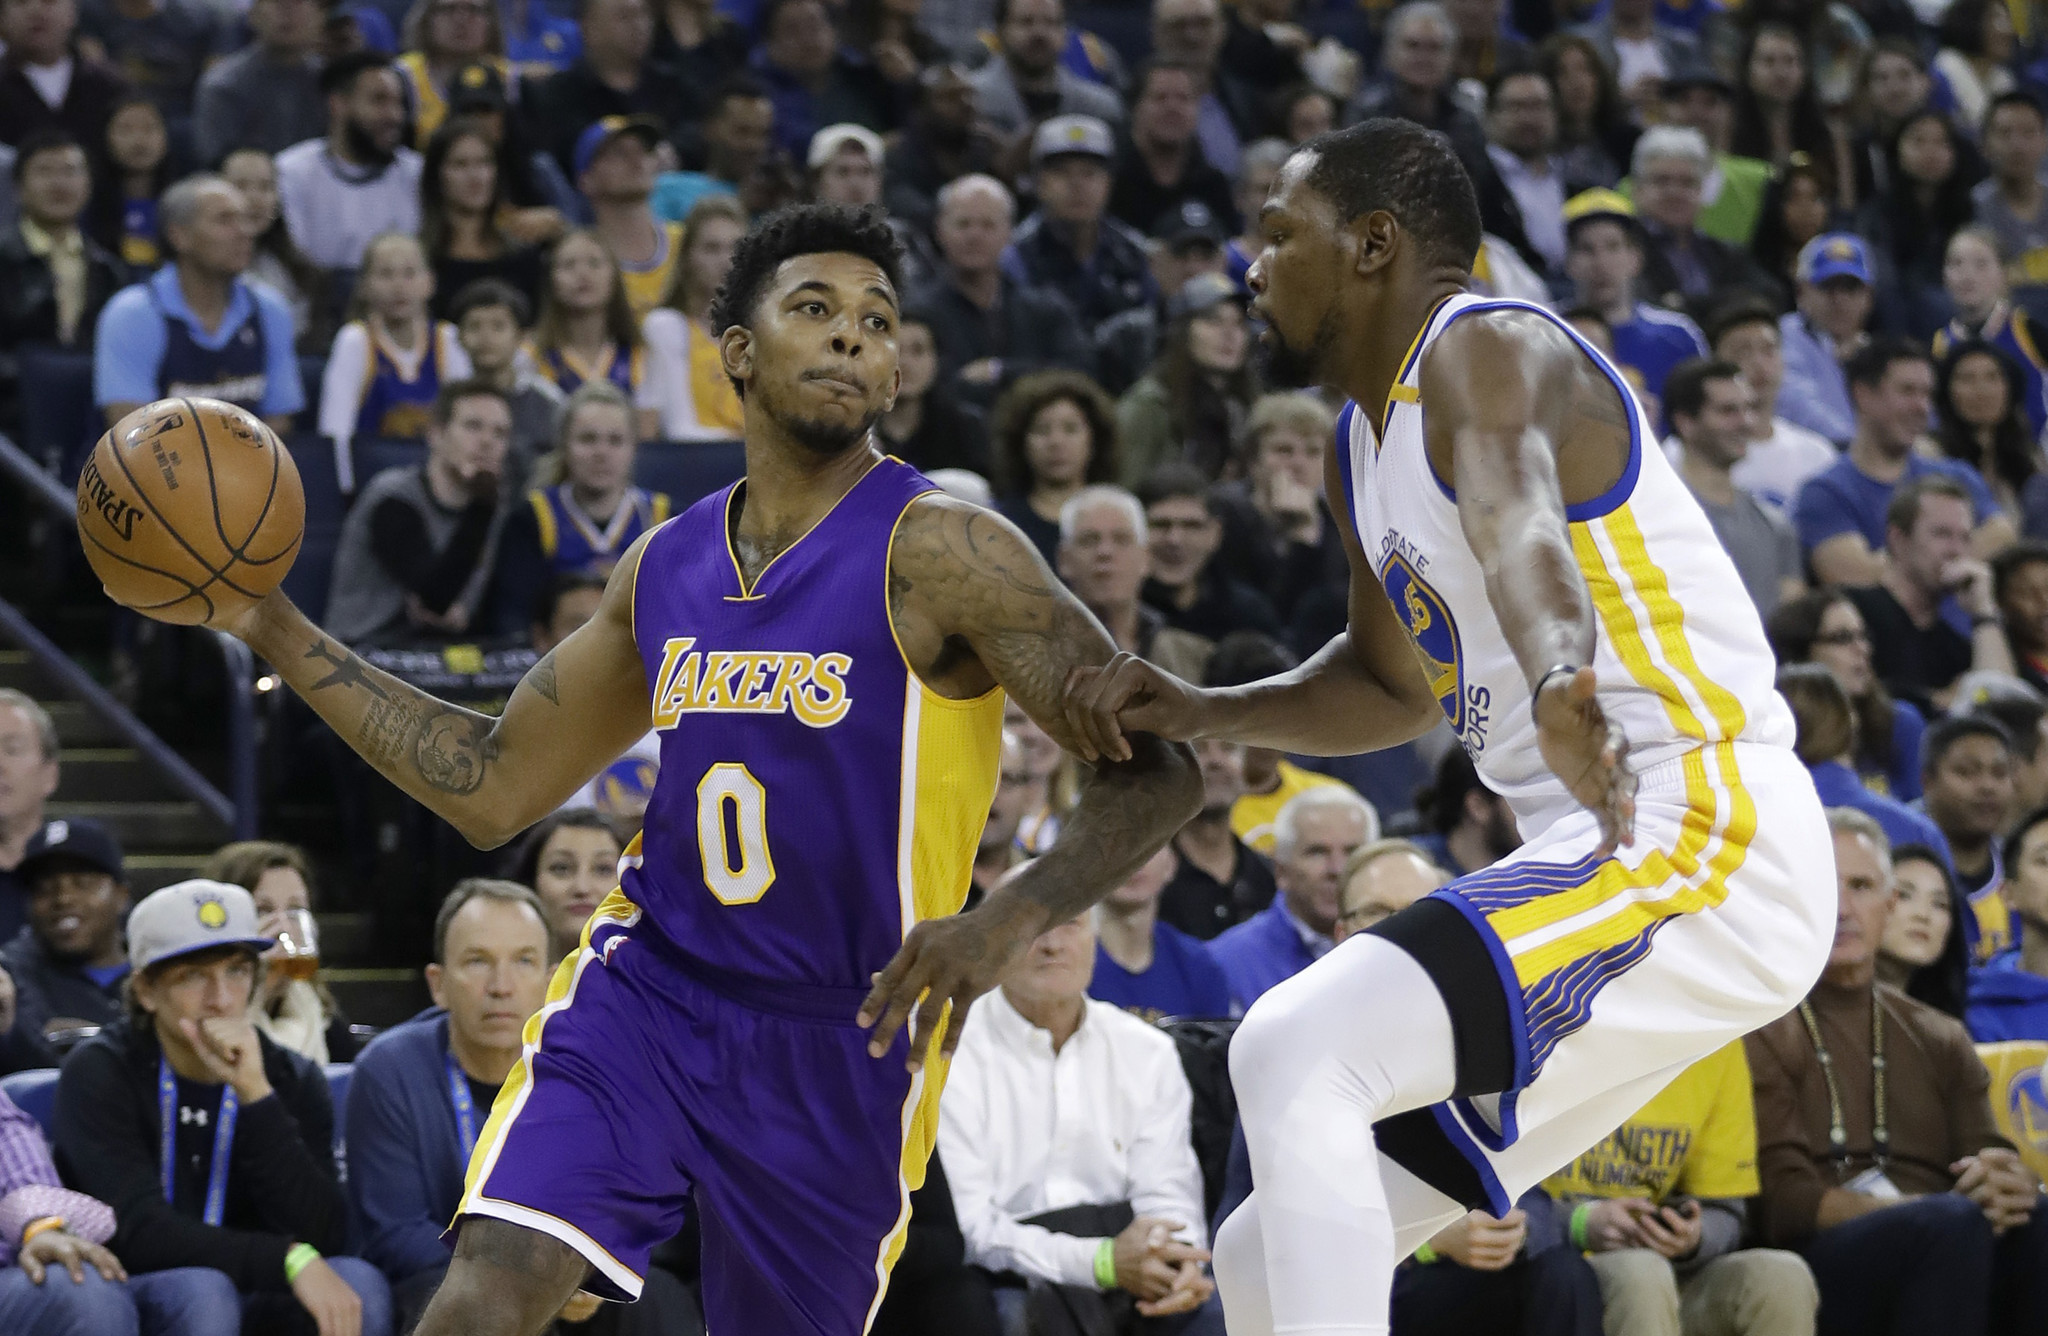 La-sp-lakers-nick-young-injury-20161130